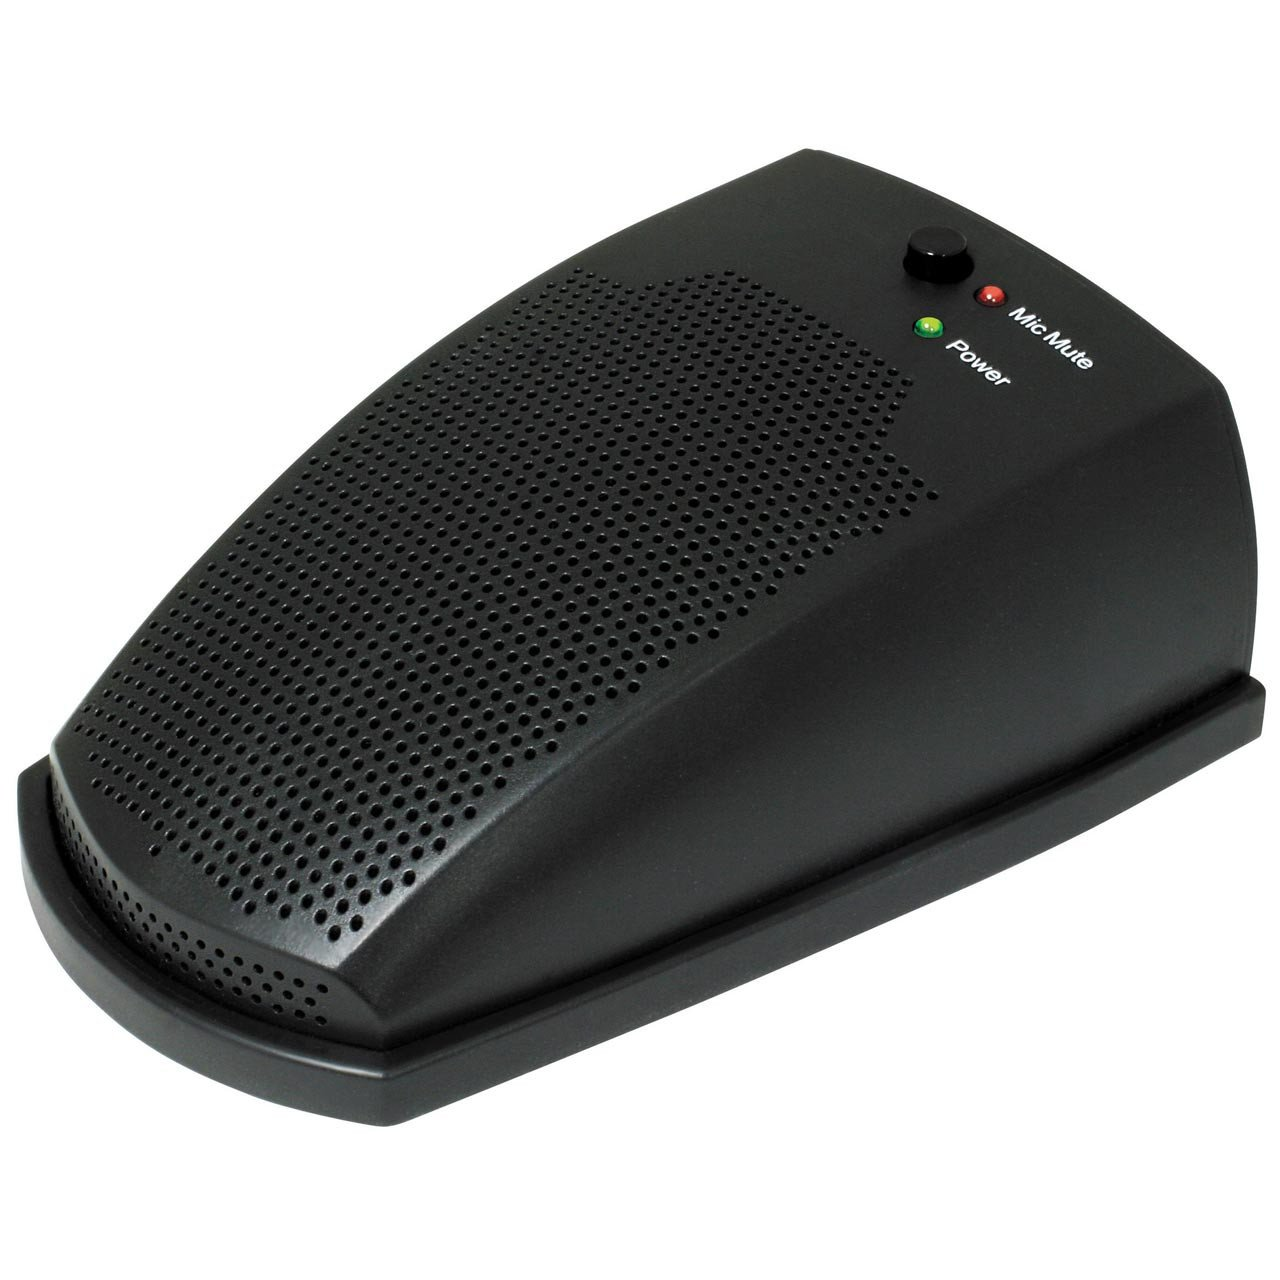 USB Microphones - MXL AC-406 USB Desktop Communicator - USB Speakerphone